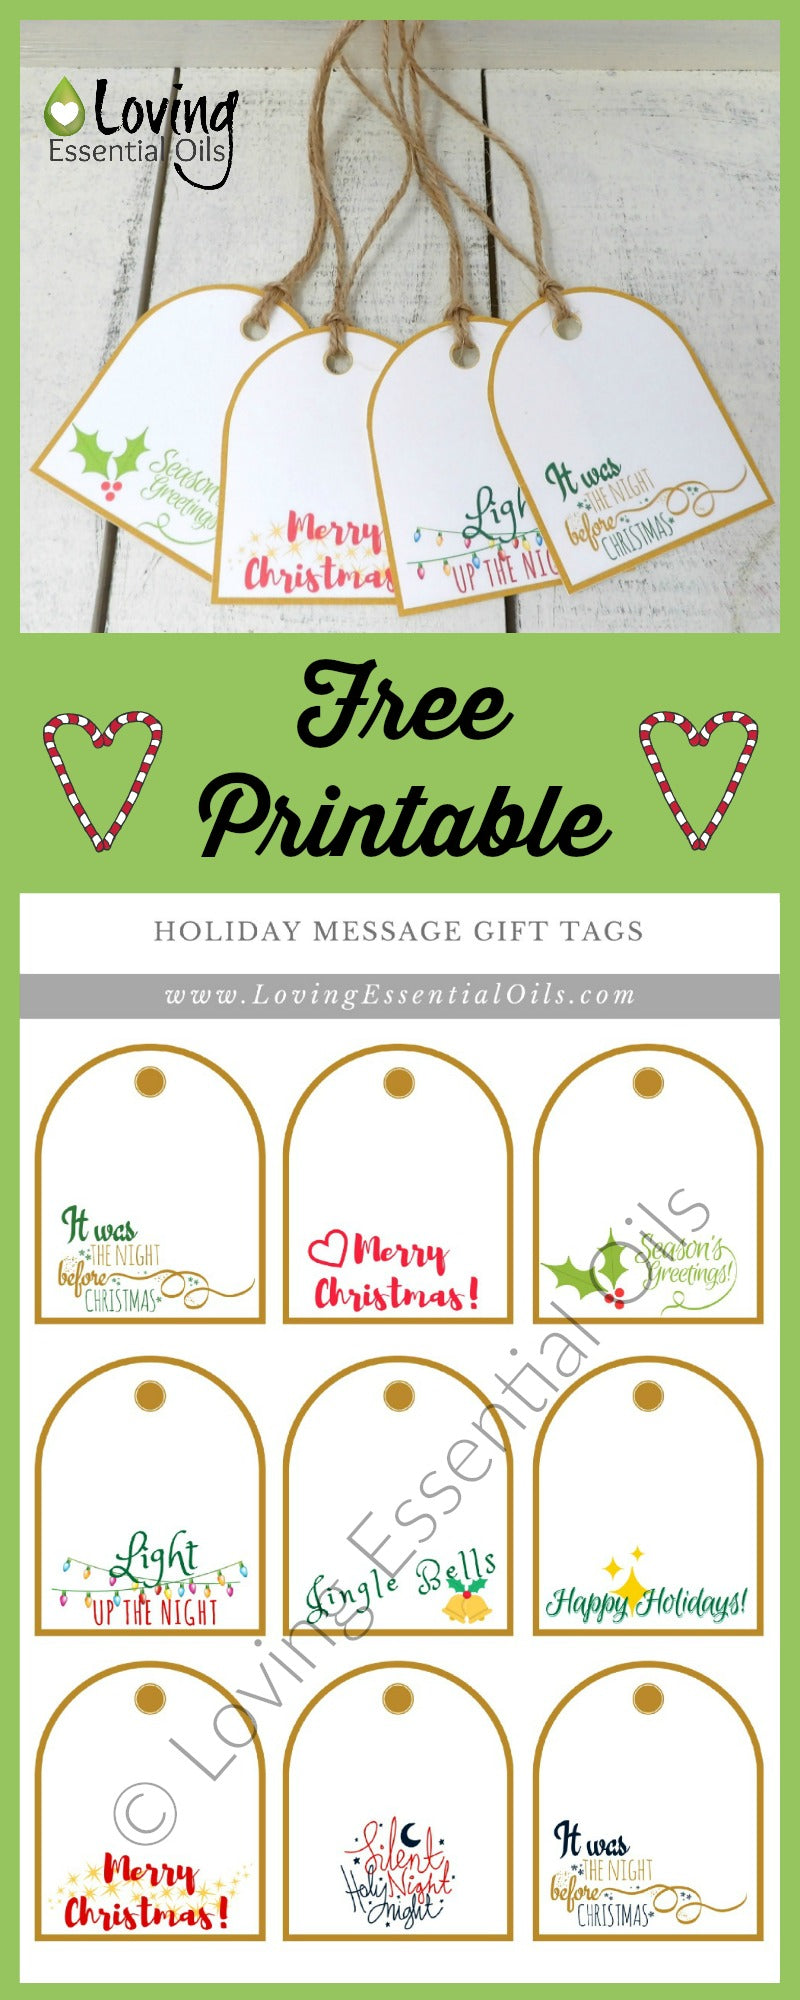 Free printable holiday gift tags loving essential oils free printable holiday gift tags by loving essential oils negle Choice Image